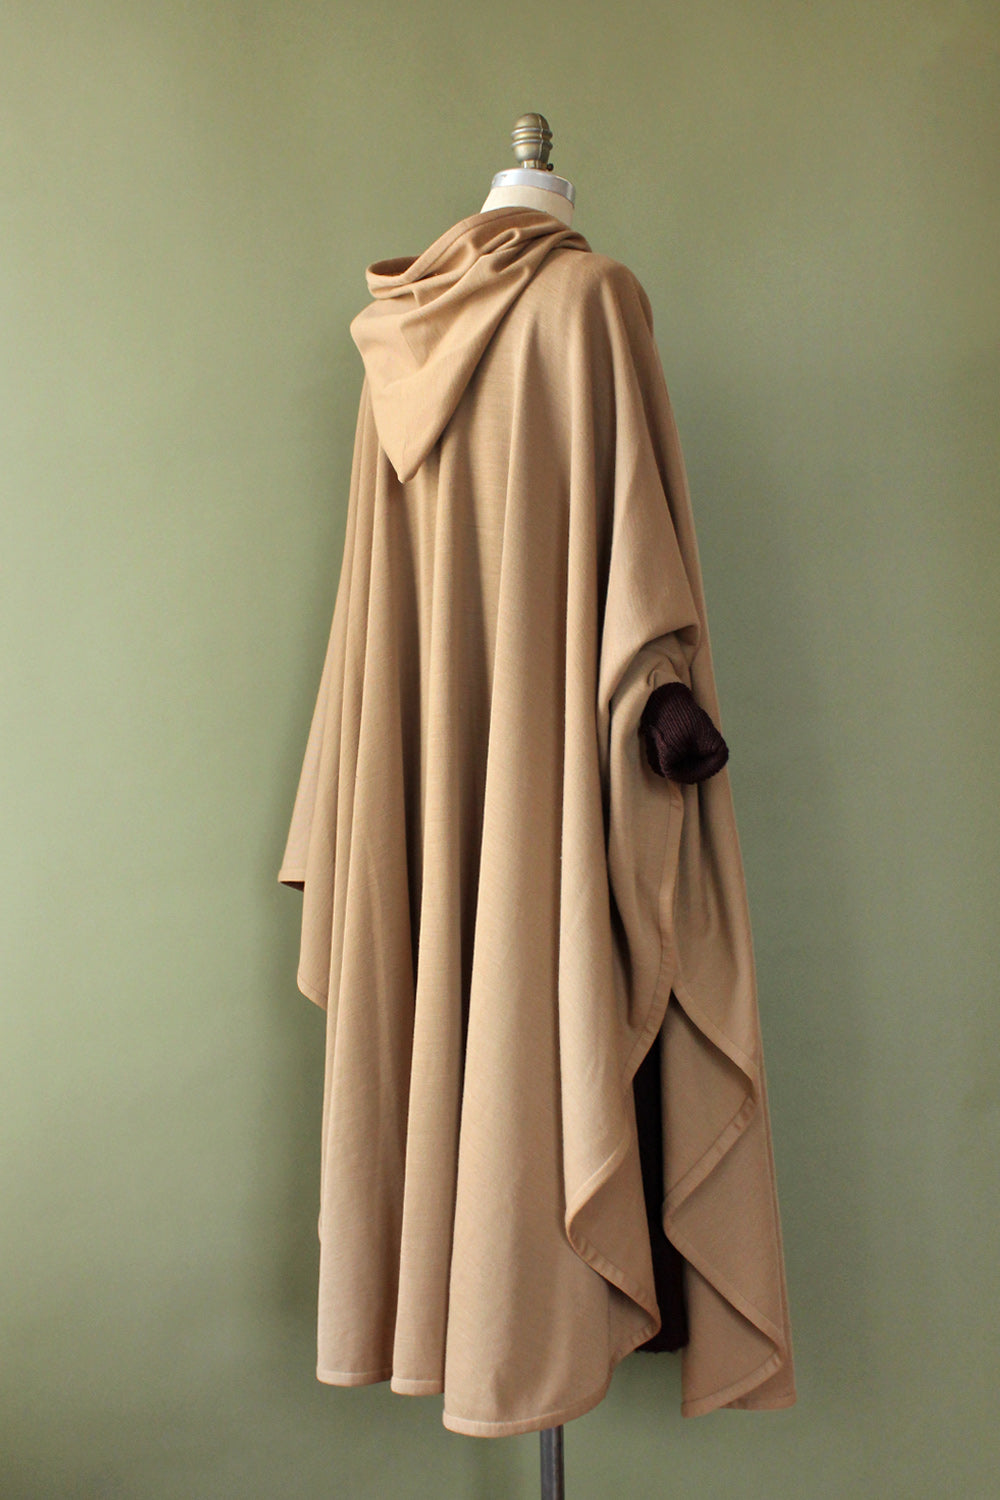 Hazelwood Hooded Cloak S-XL